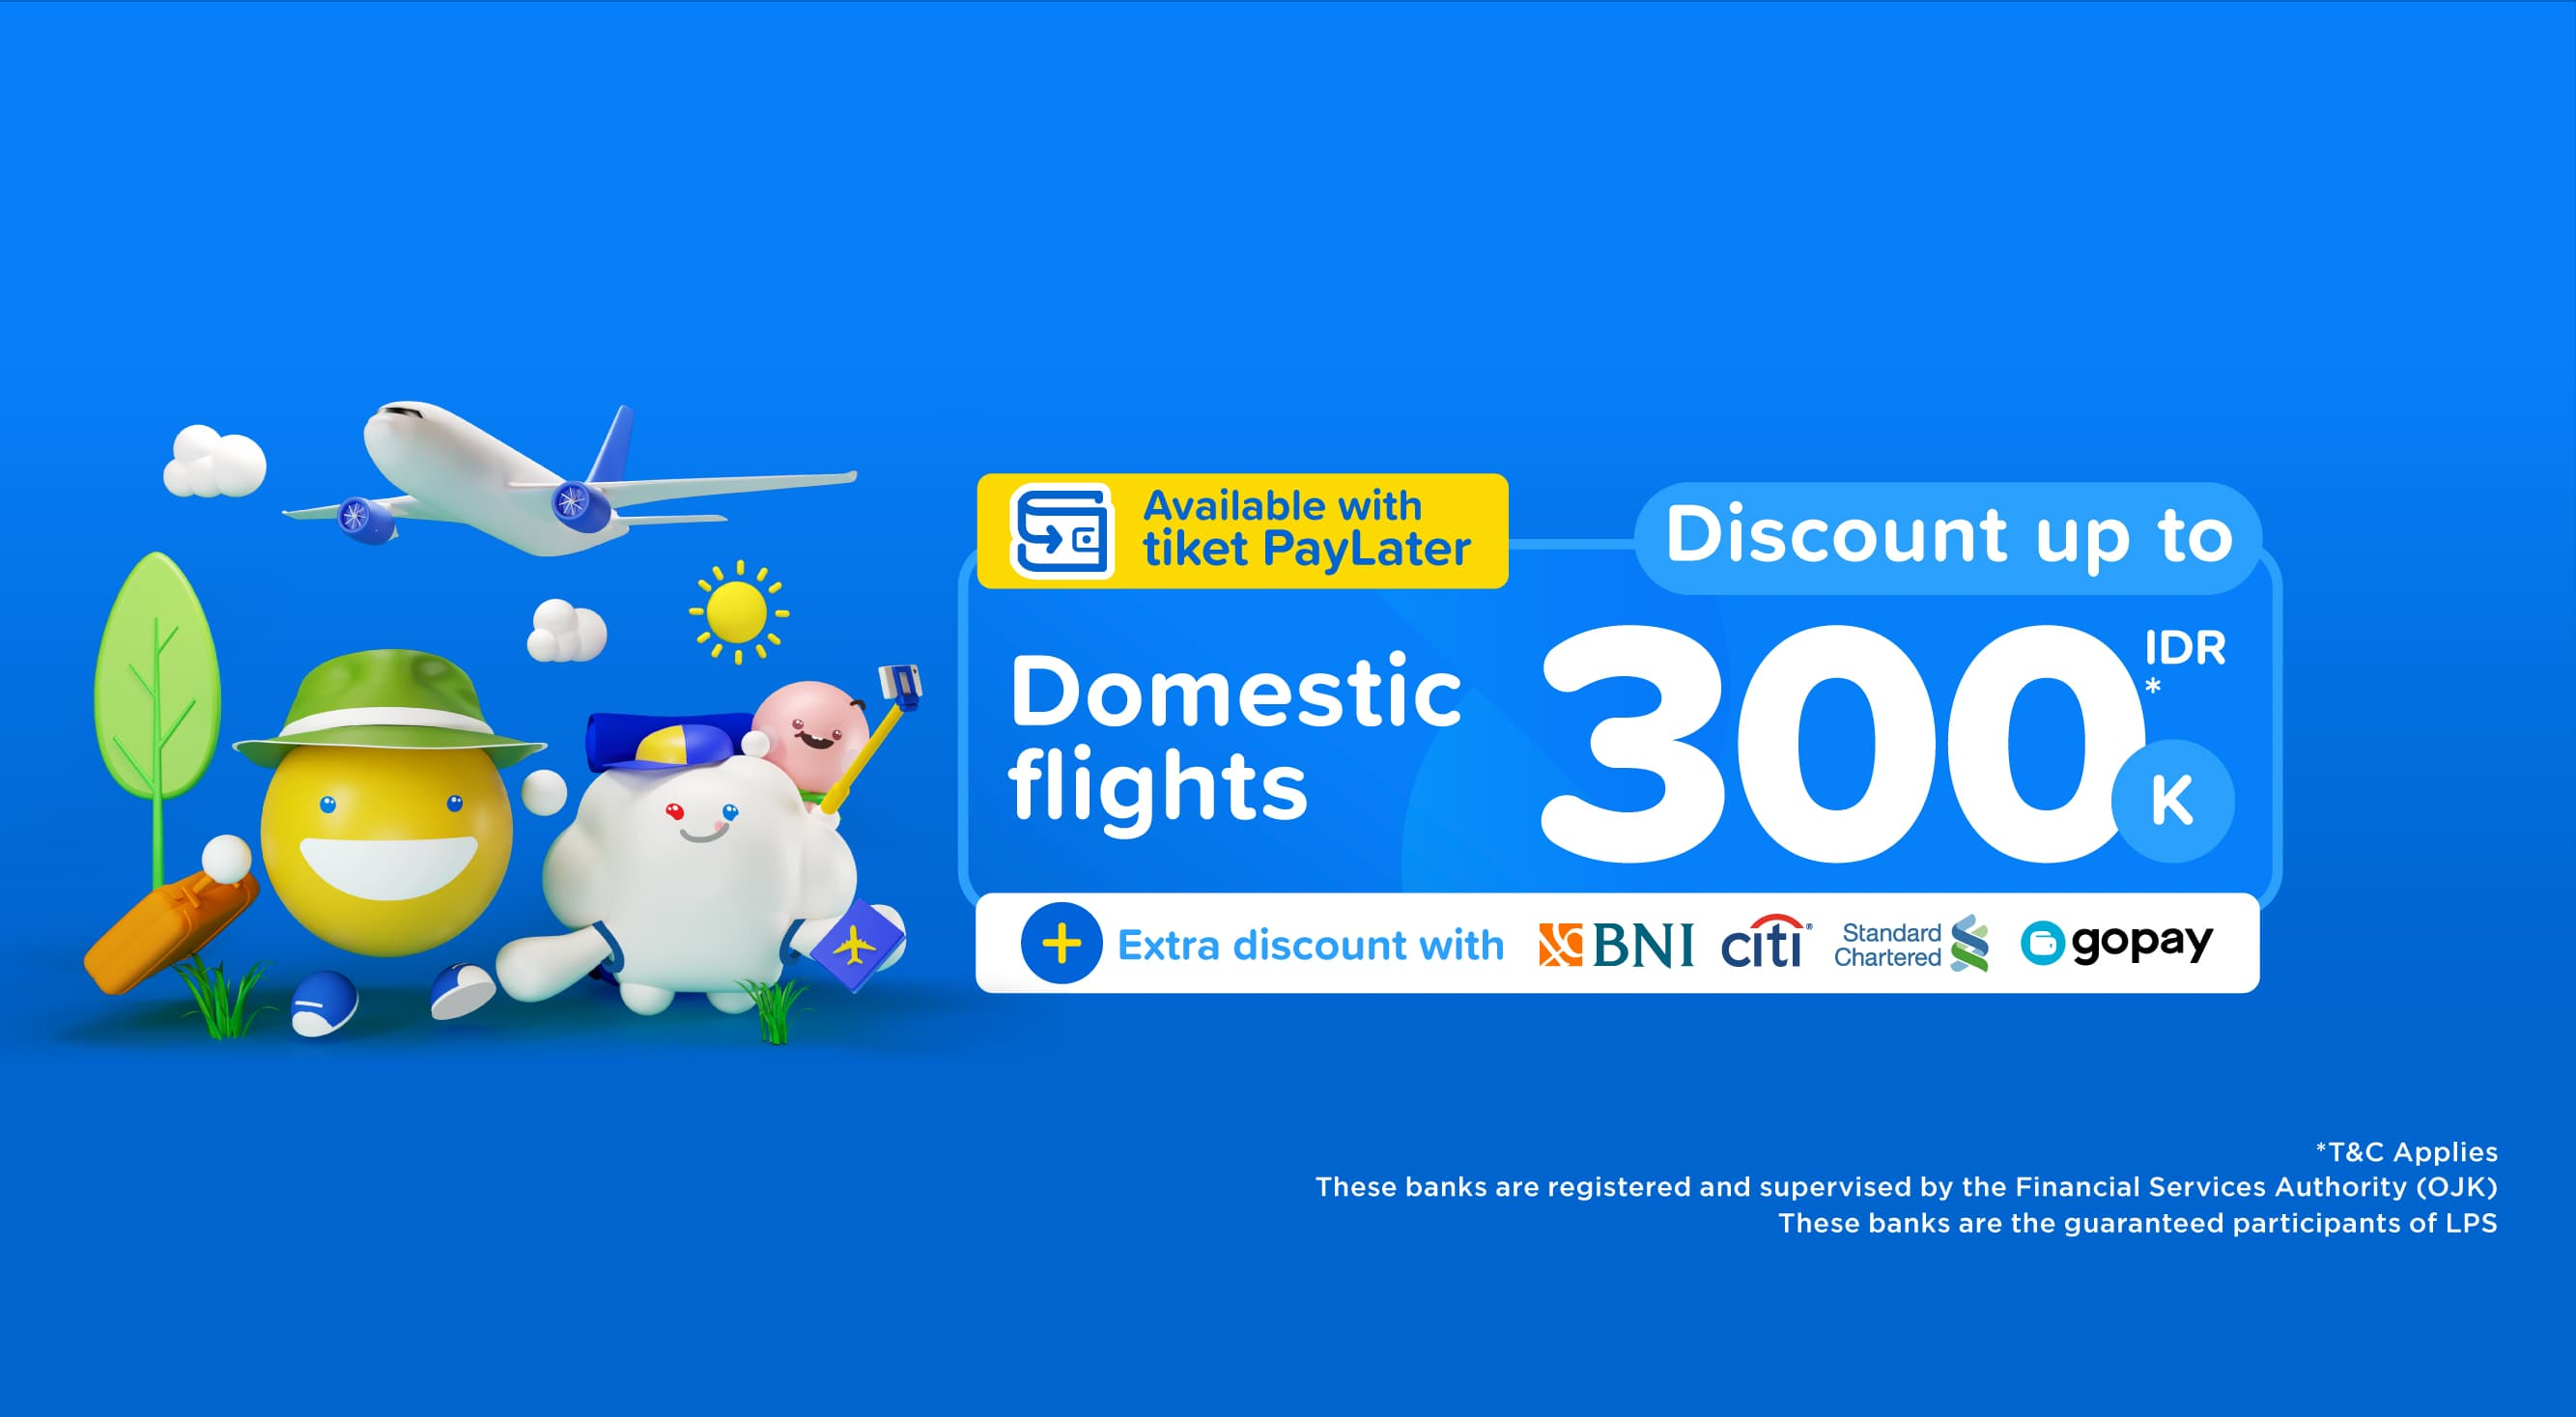 Domestic flight discount up to 300,000 IDR